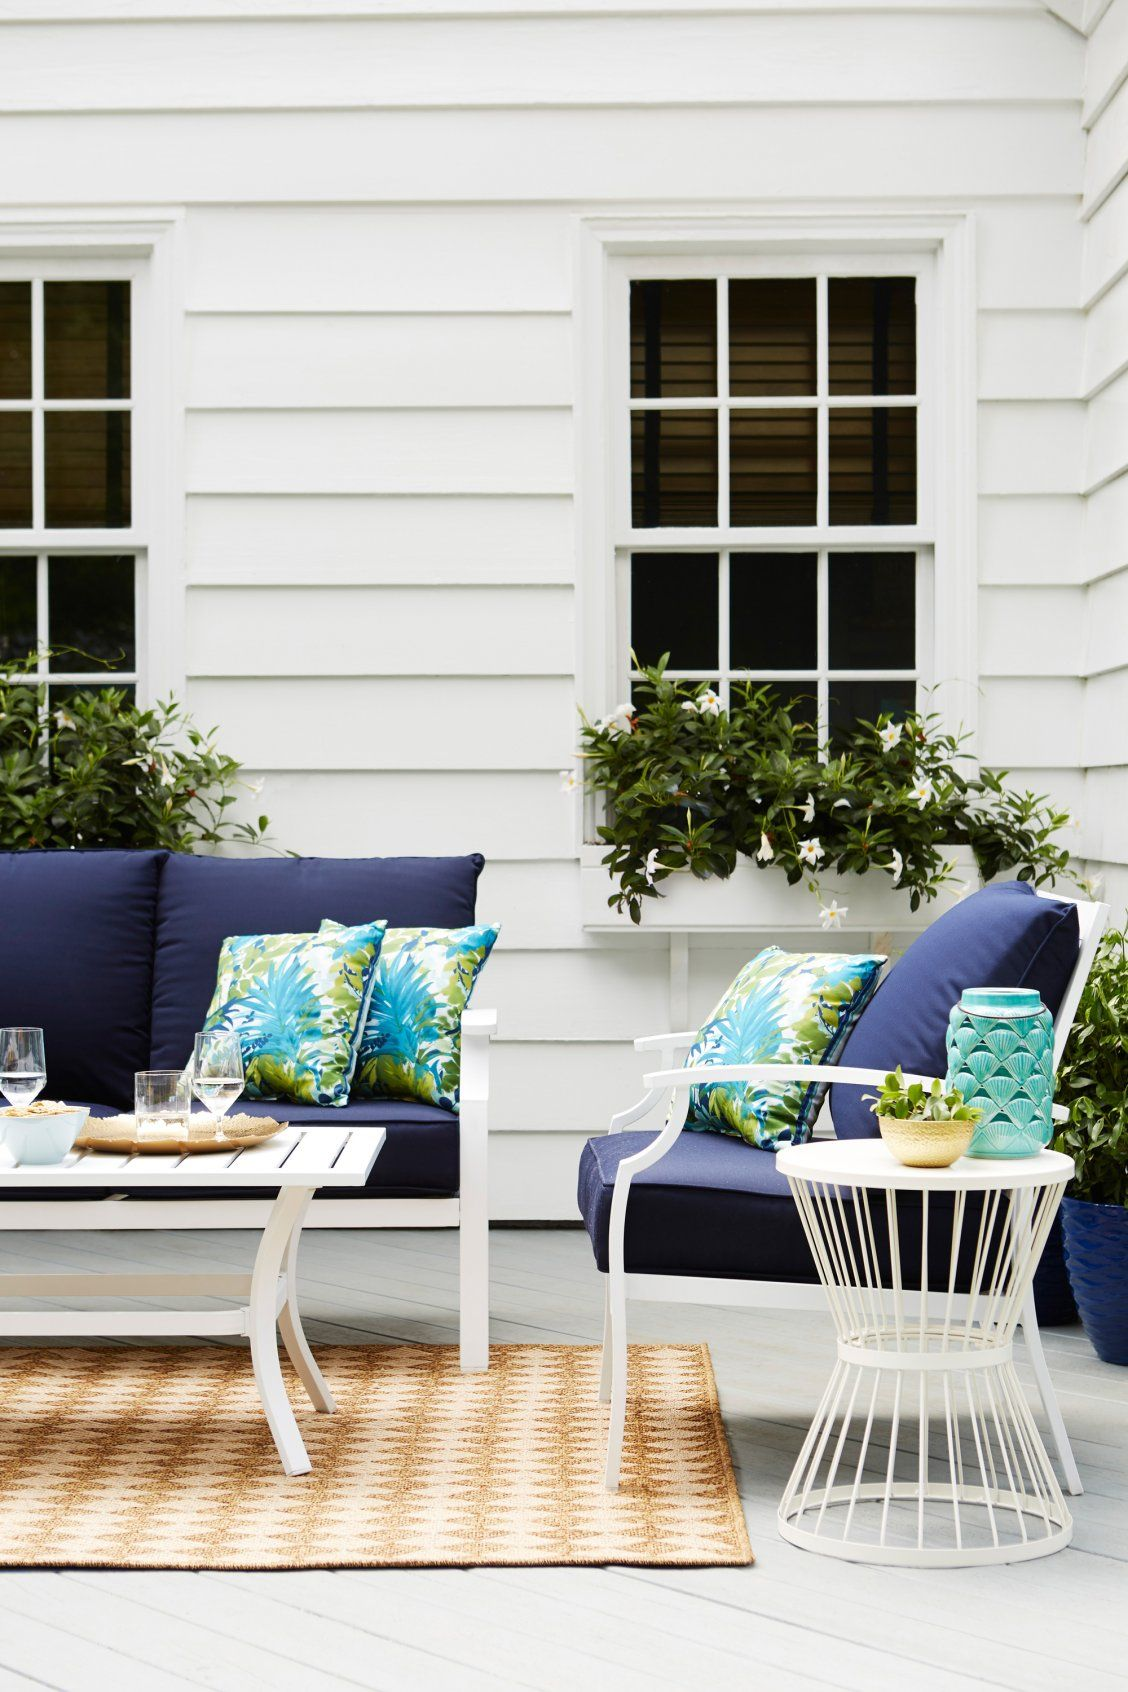 Set Sail For Style With A Nautical Inspired Outdoor Patio Set